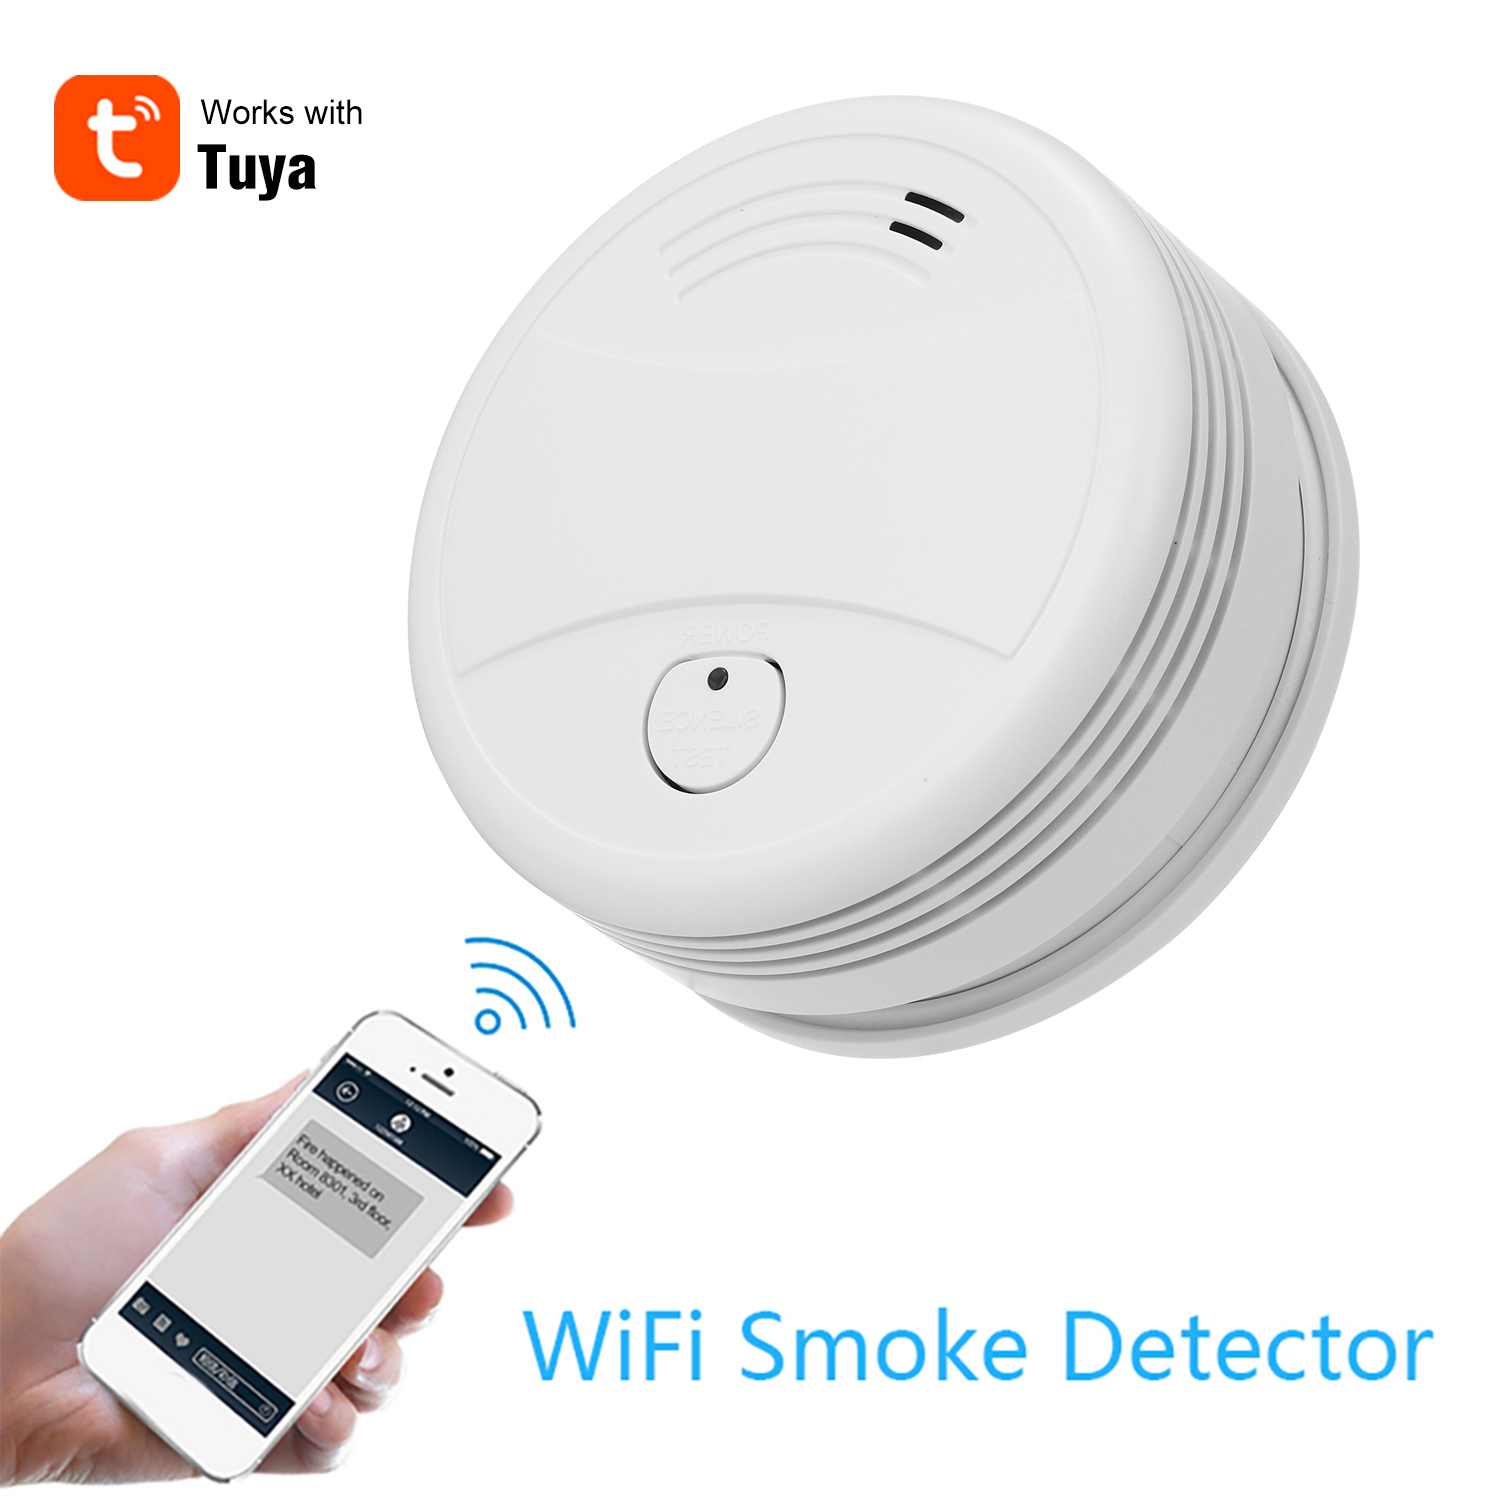 Fire-Alarm Smokehouse-Combination Smoke-Detector Tuya Firefighters Fire-Protection Wifi title=